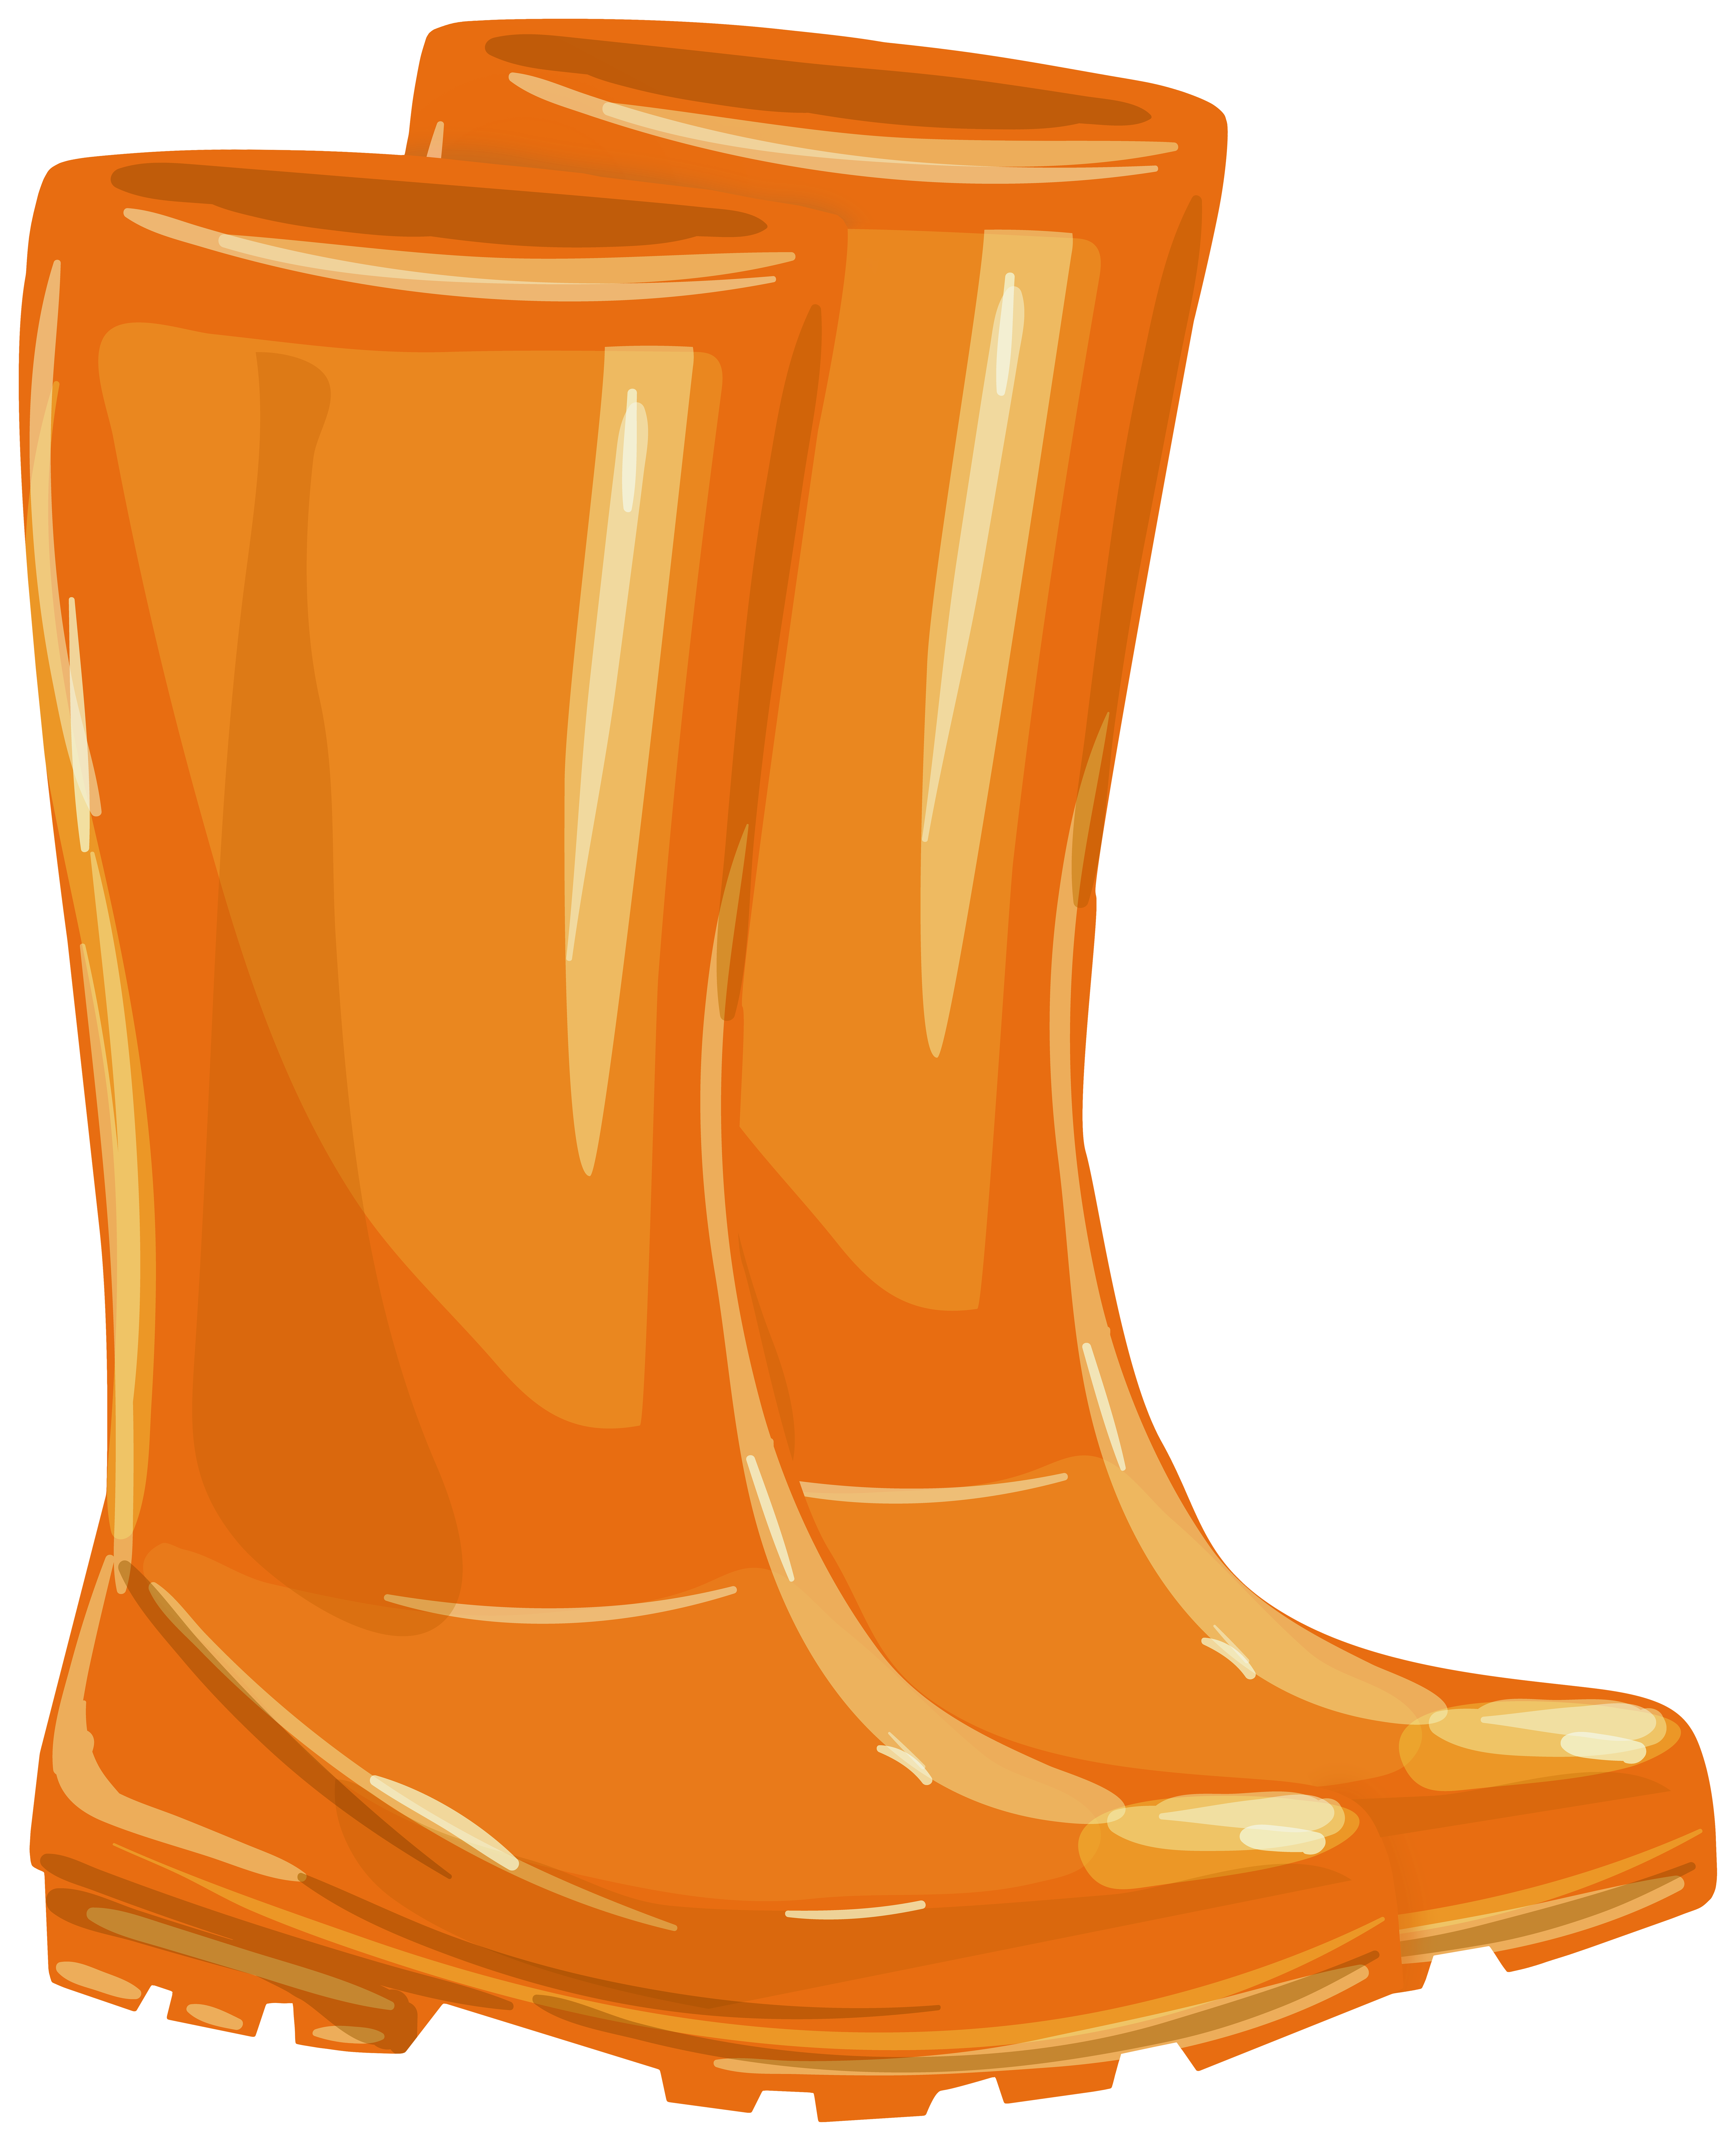 Boot clipart rubber boot. Orange boots png gallery